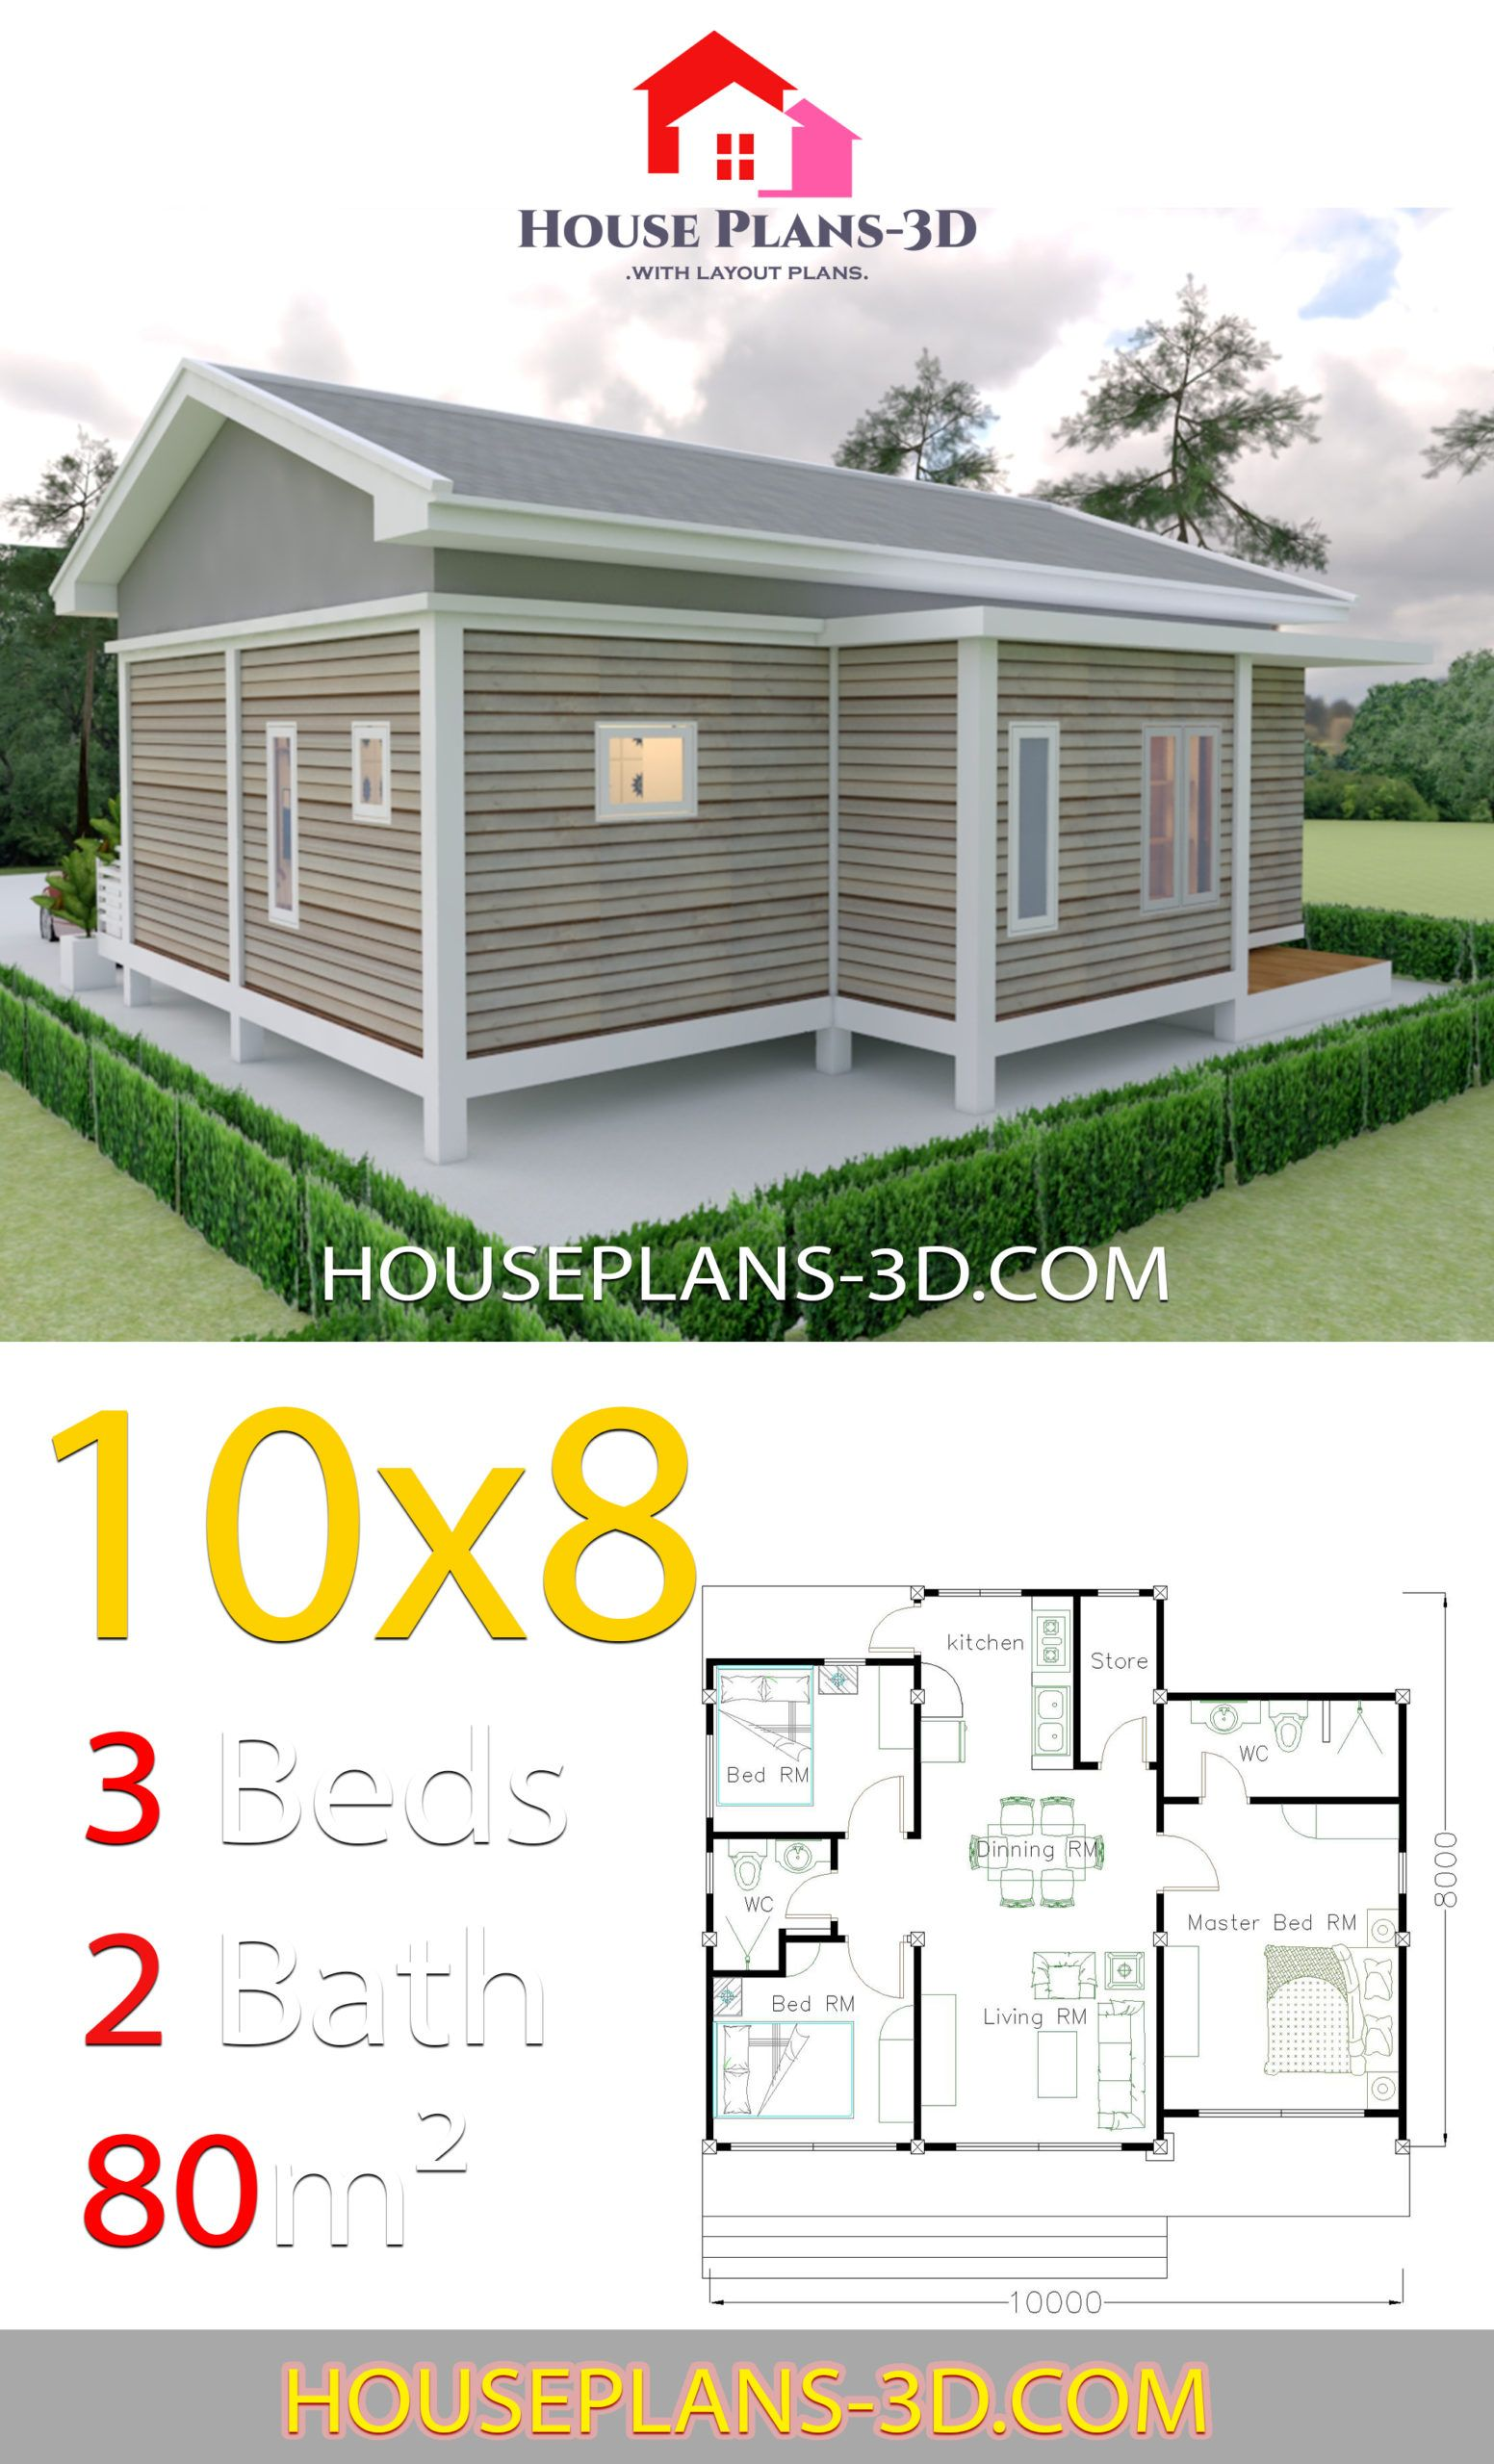 House Plans 10x8 With 3 Bedrooms Gable Roof House Plans 3d House Plans Gable Roof House Diy Tiny House Plans